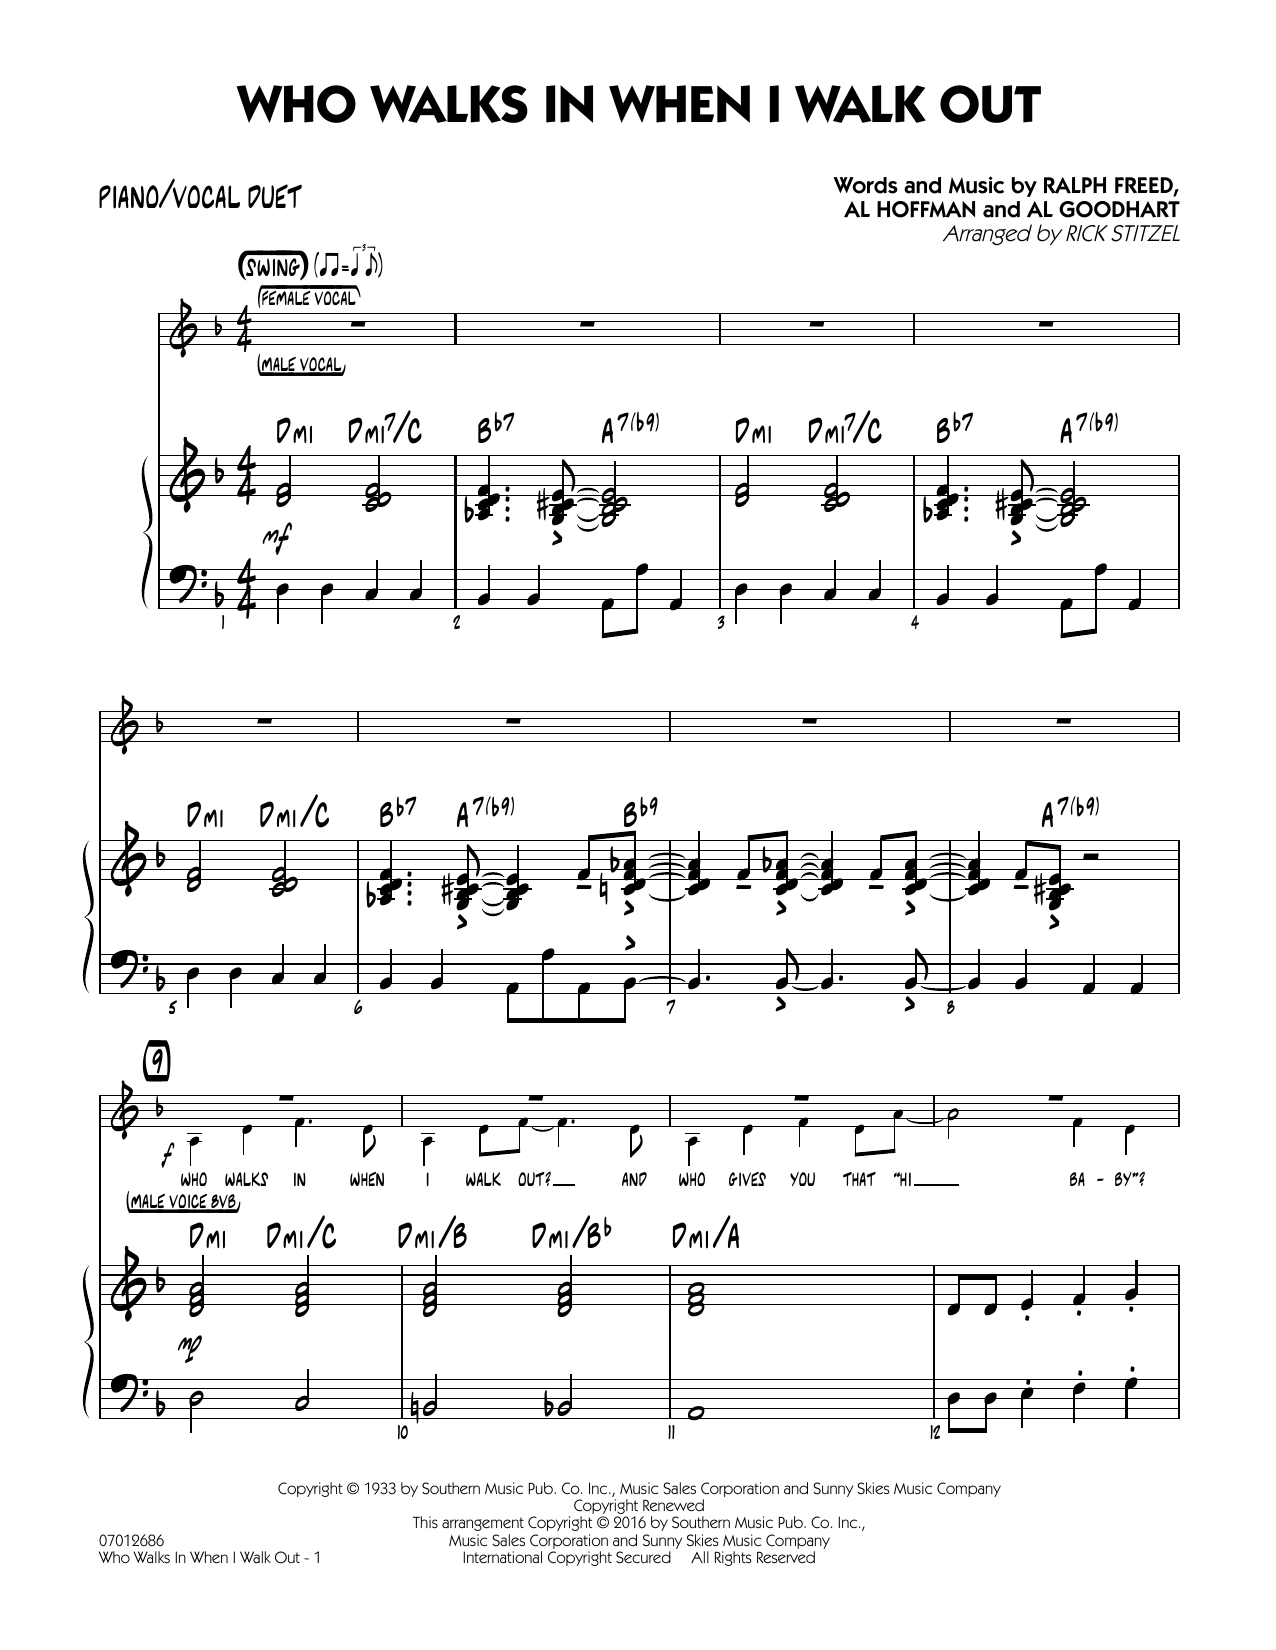 Who Walks In When I Walk Out? (Key: D minor) - Piano/Vocal Duet (Jazz Ensemble)